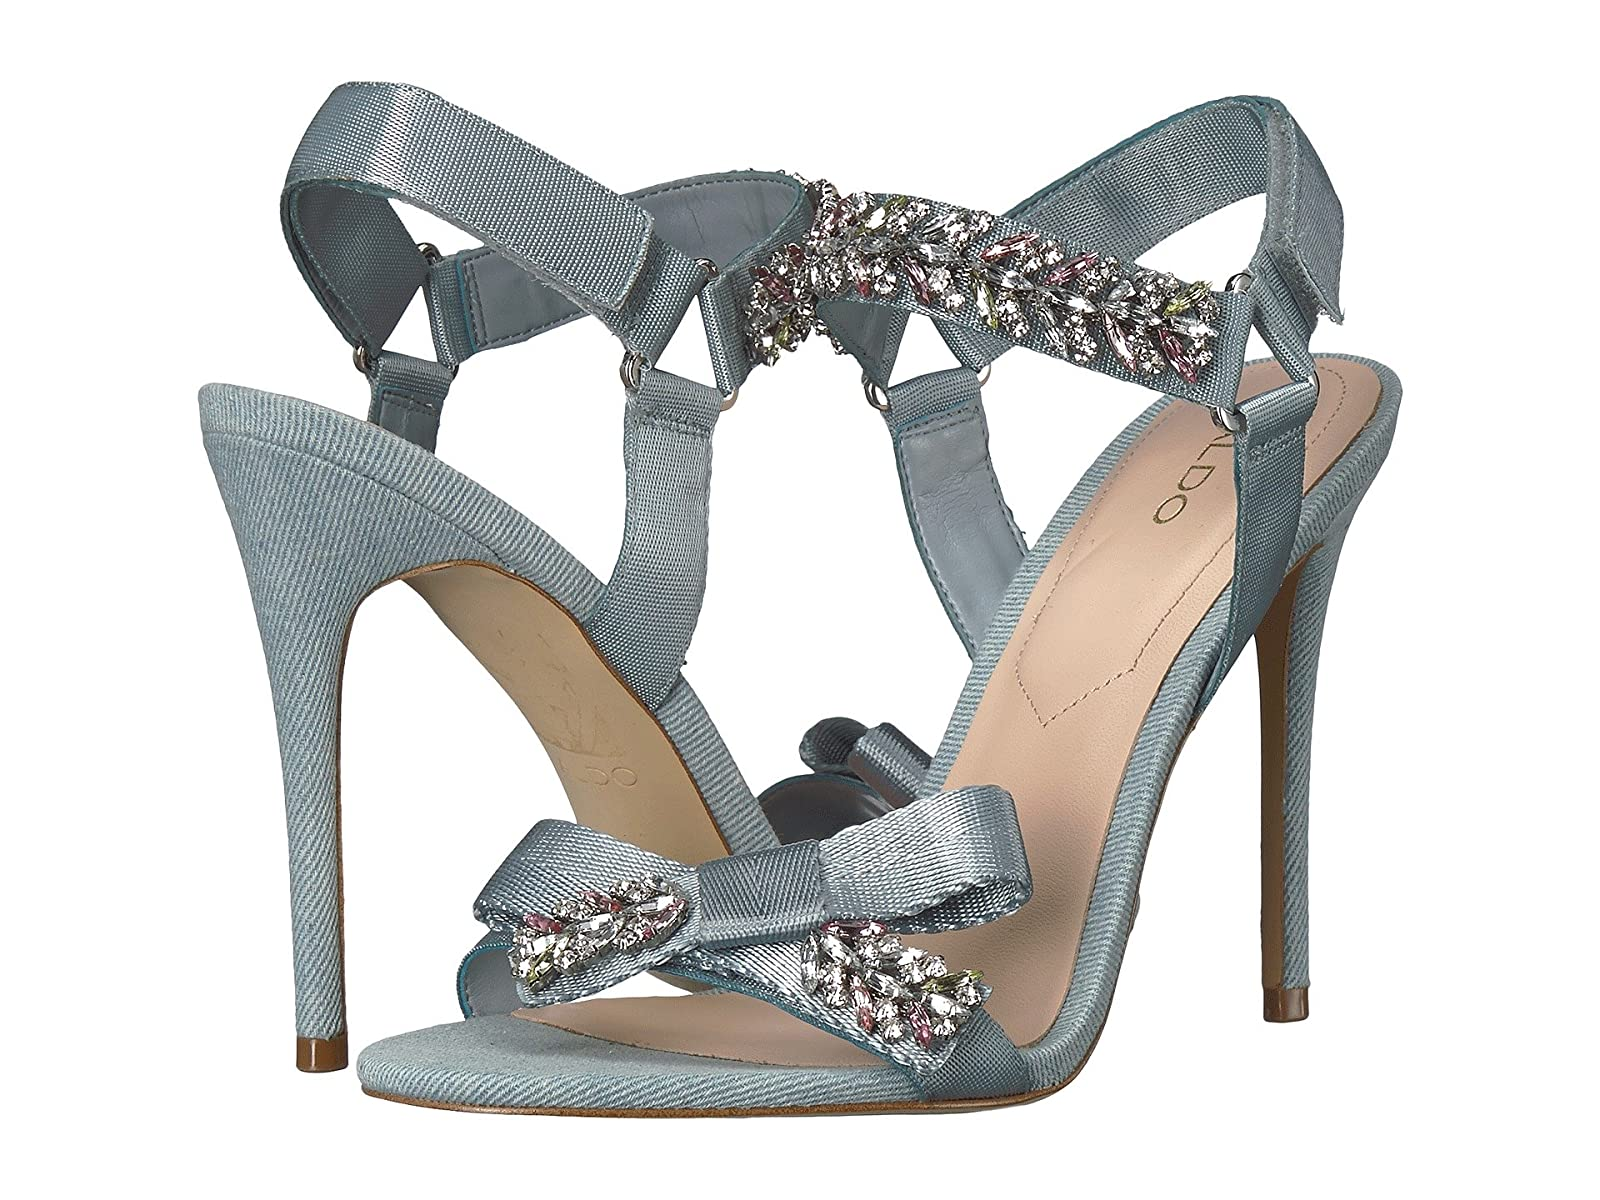 ALDO CarlahCheap and distinctive eye-catching shoes